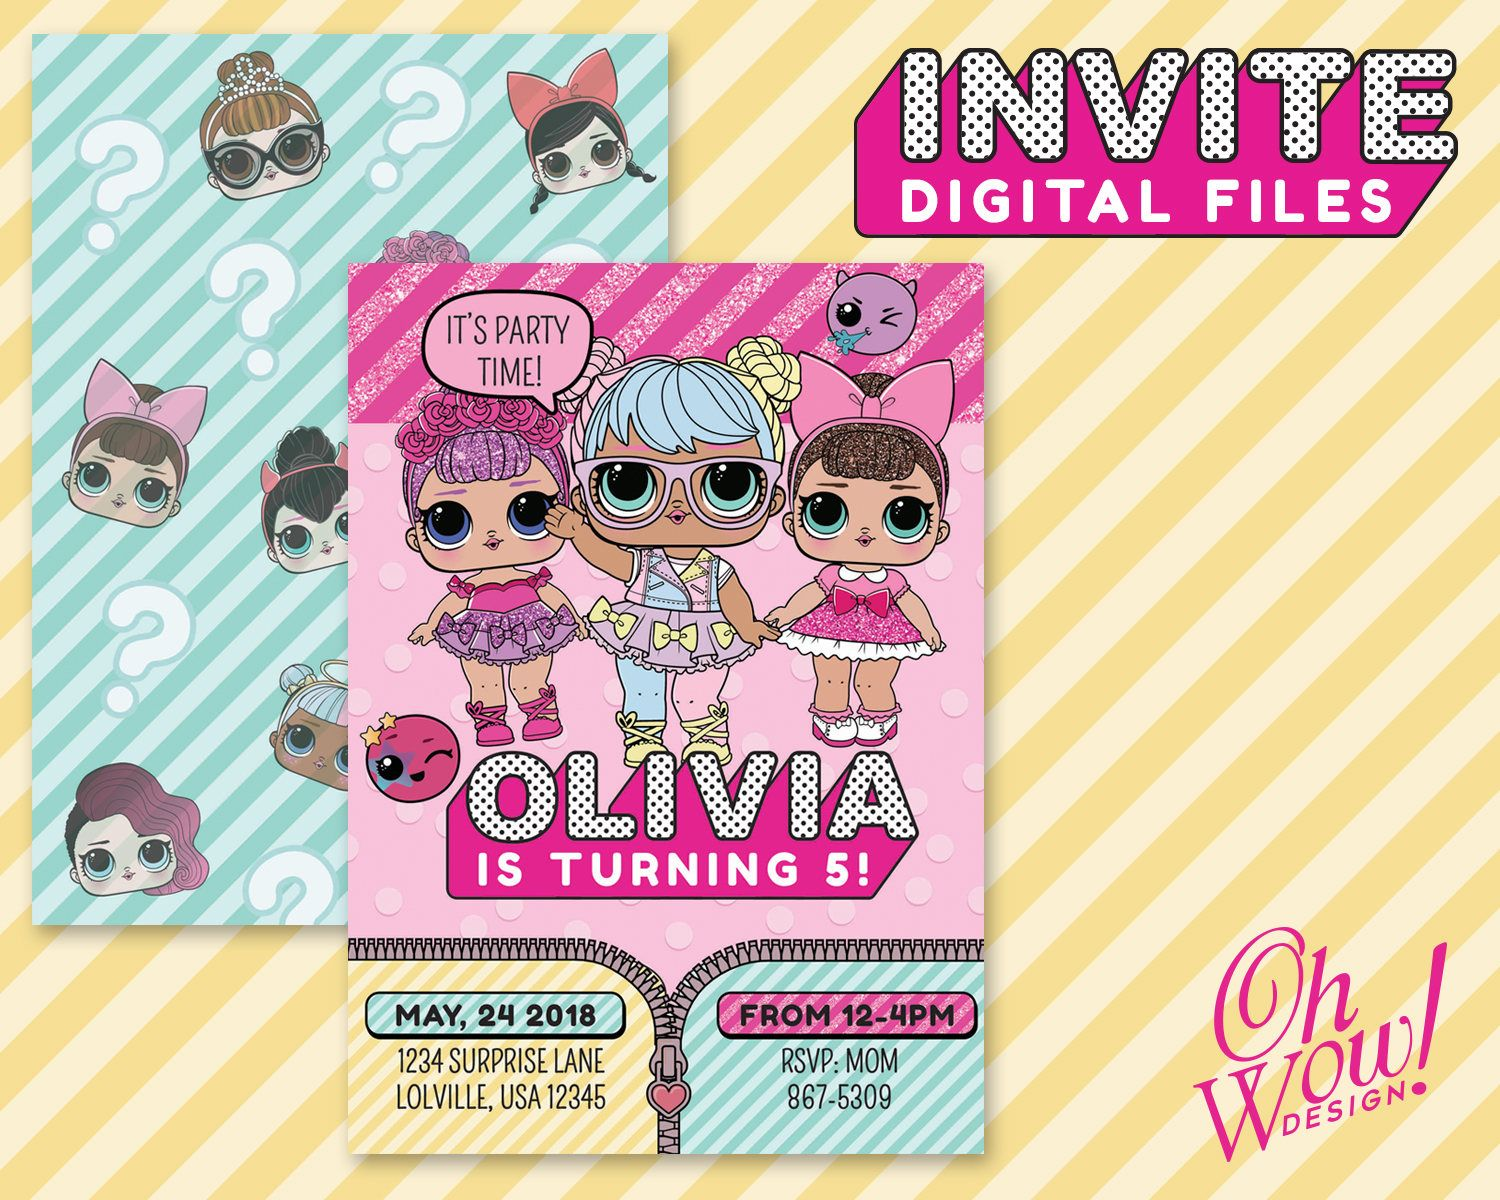 Lol Surprise Doll Inspired Birthday Party Invitation Digital File Lol Surp Surprise Birthday Invitations Birthday Party Invitations Surprise Party Decorations